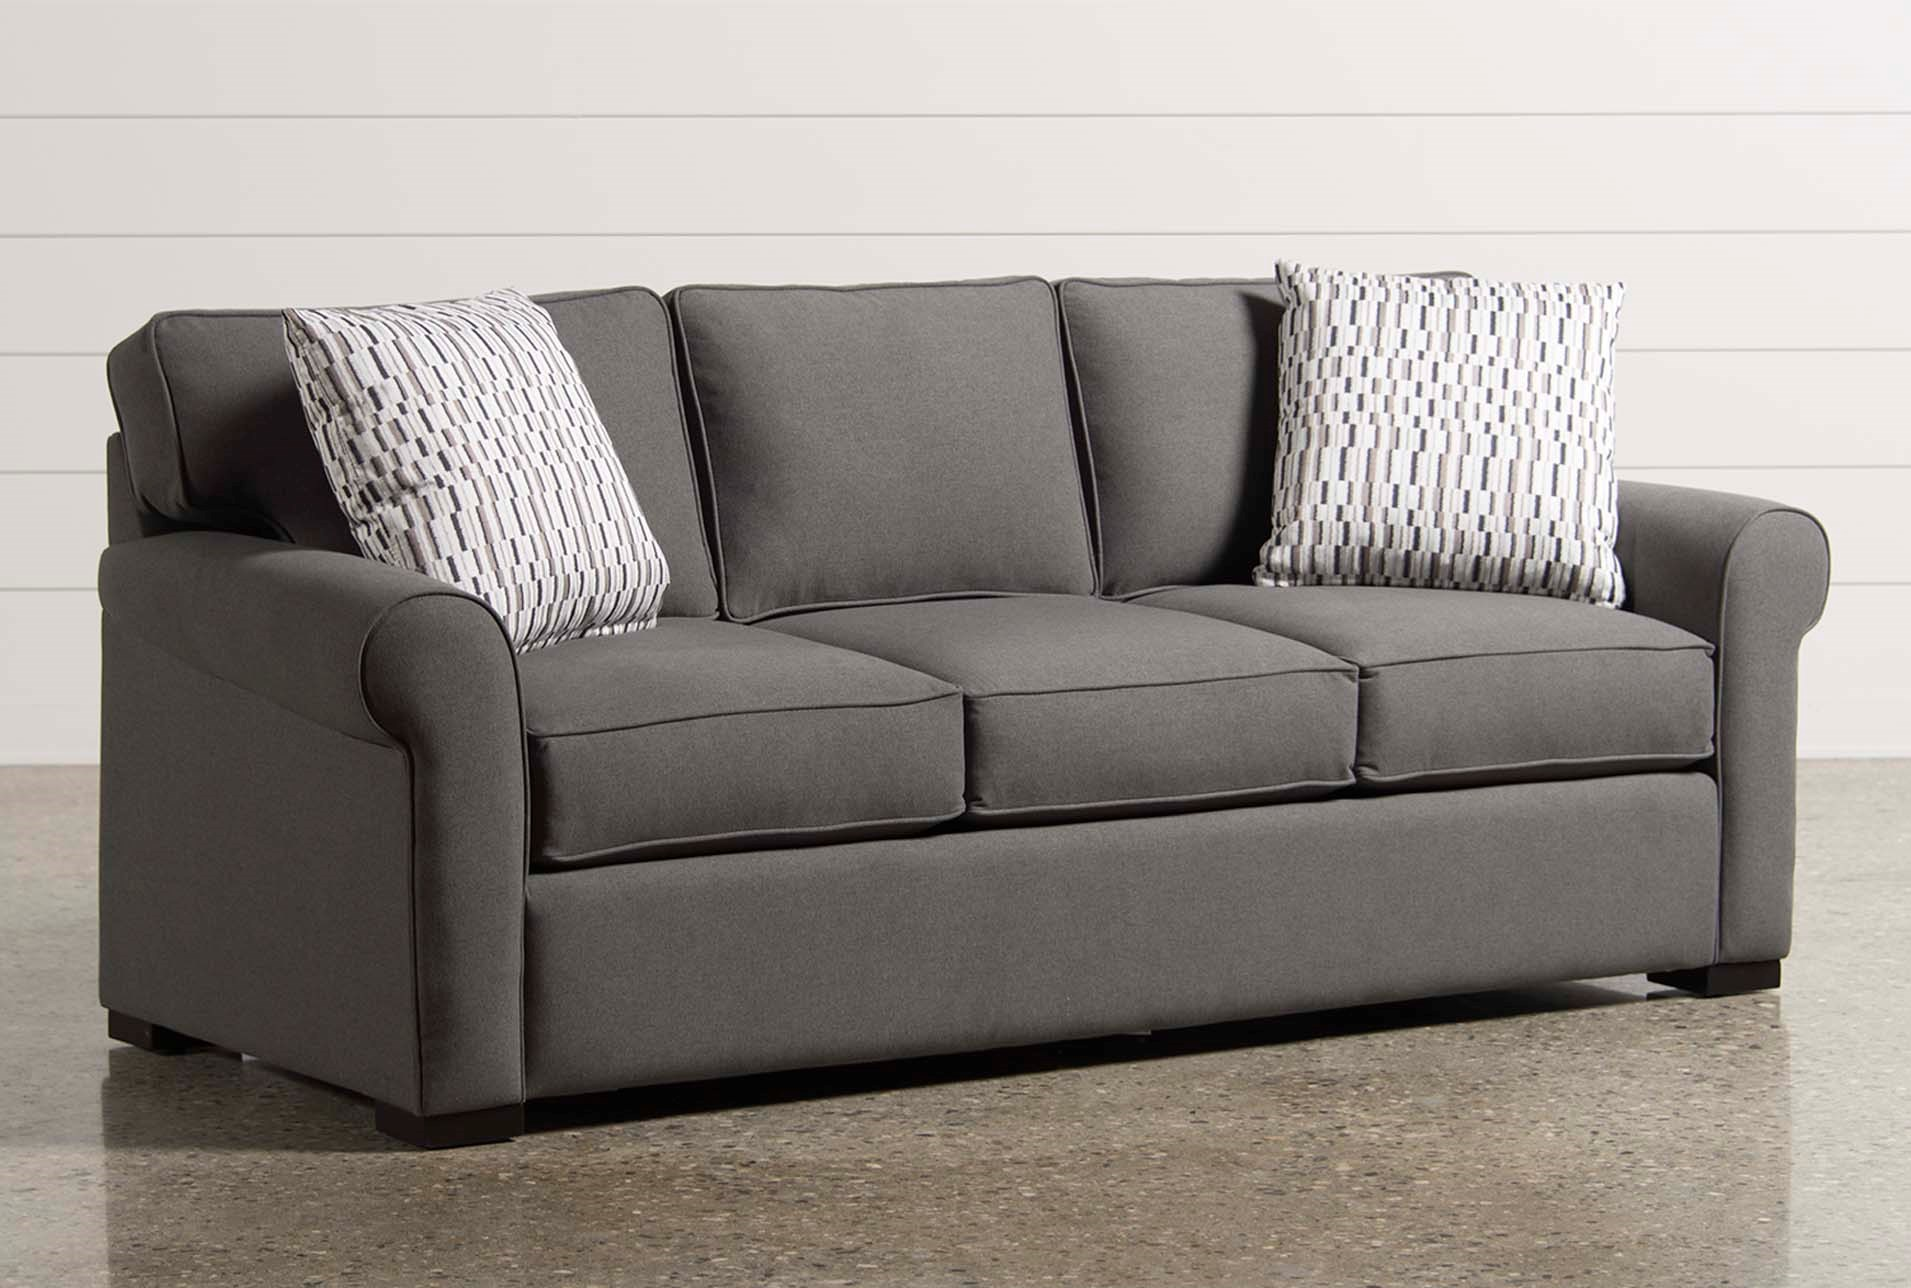 Mia Memory Foam Queen Sleeper Living Spaces ~ Sleeper Sofa Memory Foam